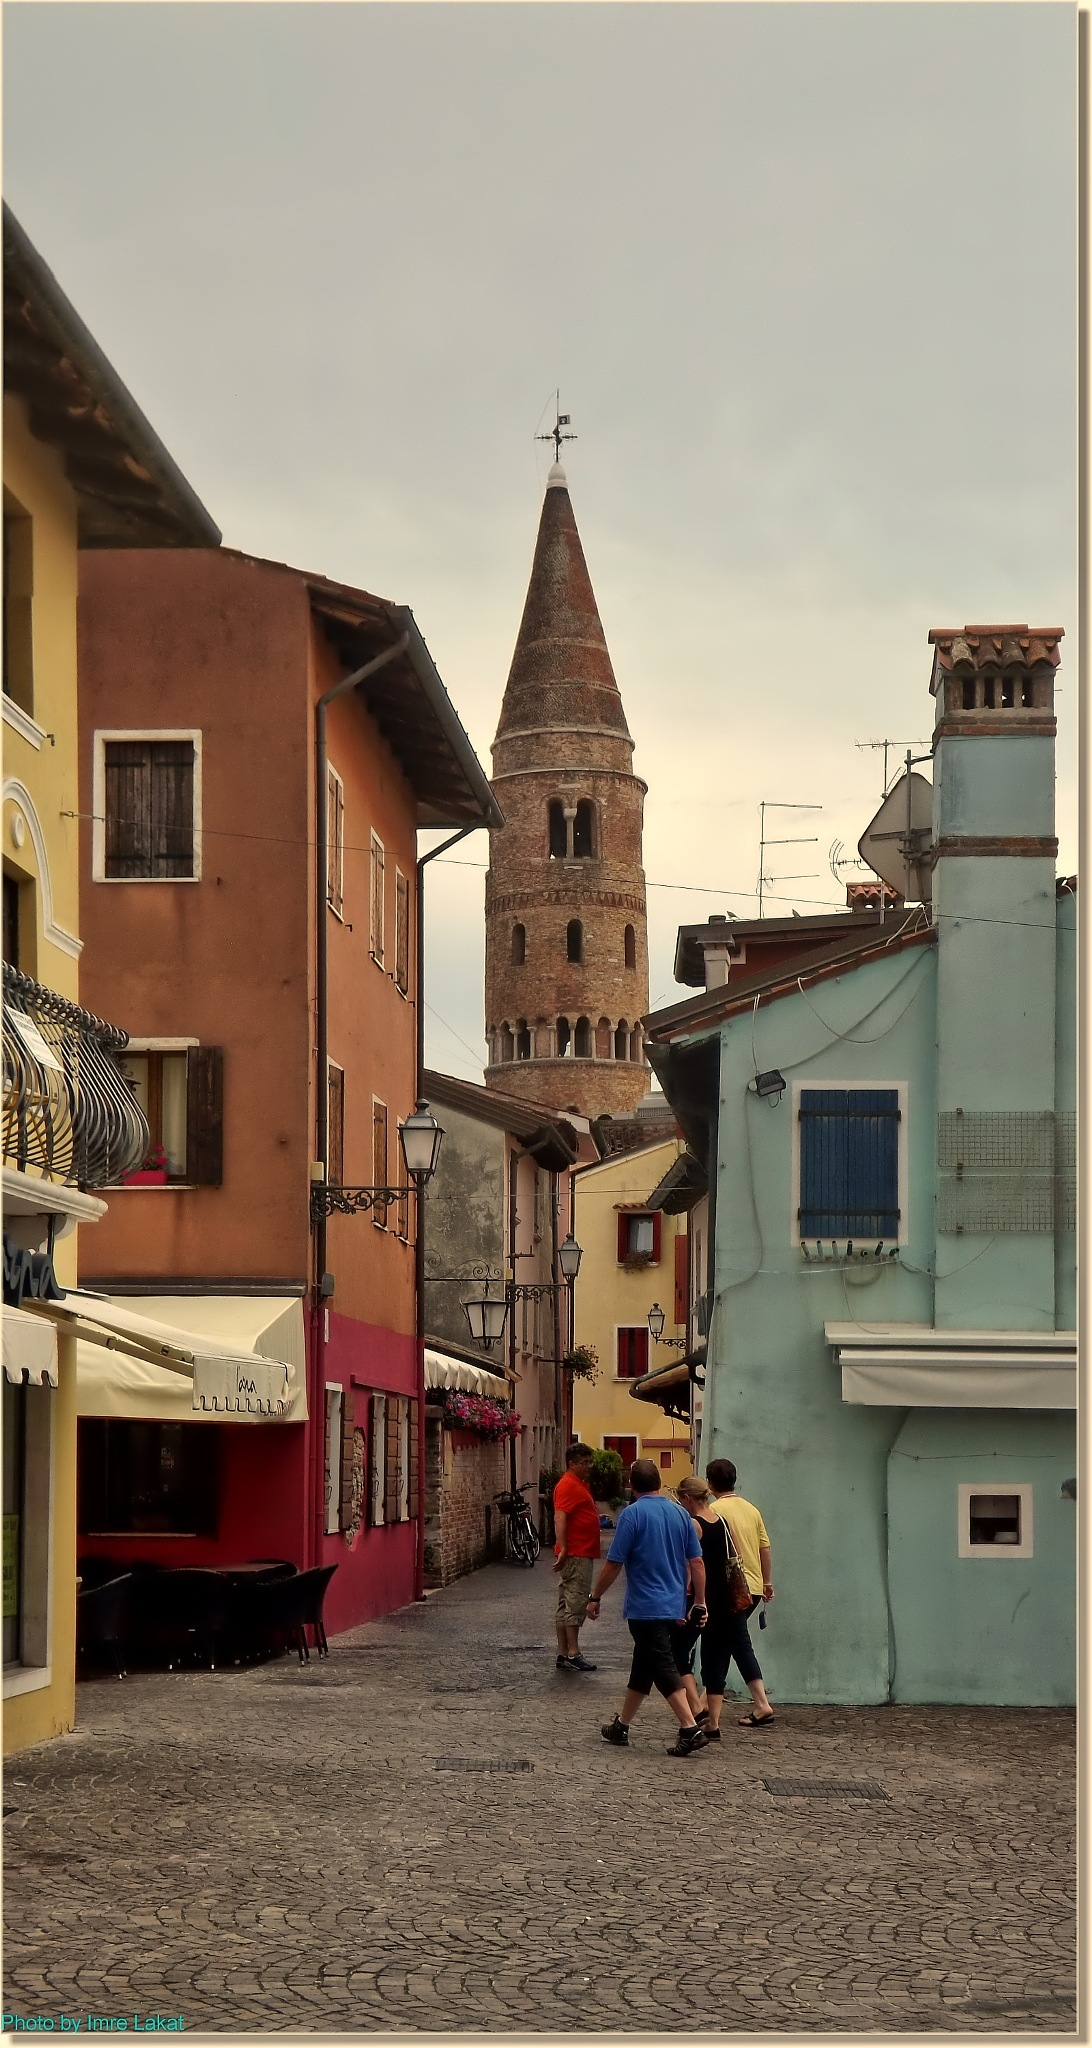 Tower in Caorle by Imre Lakat